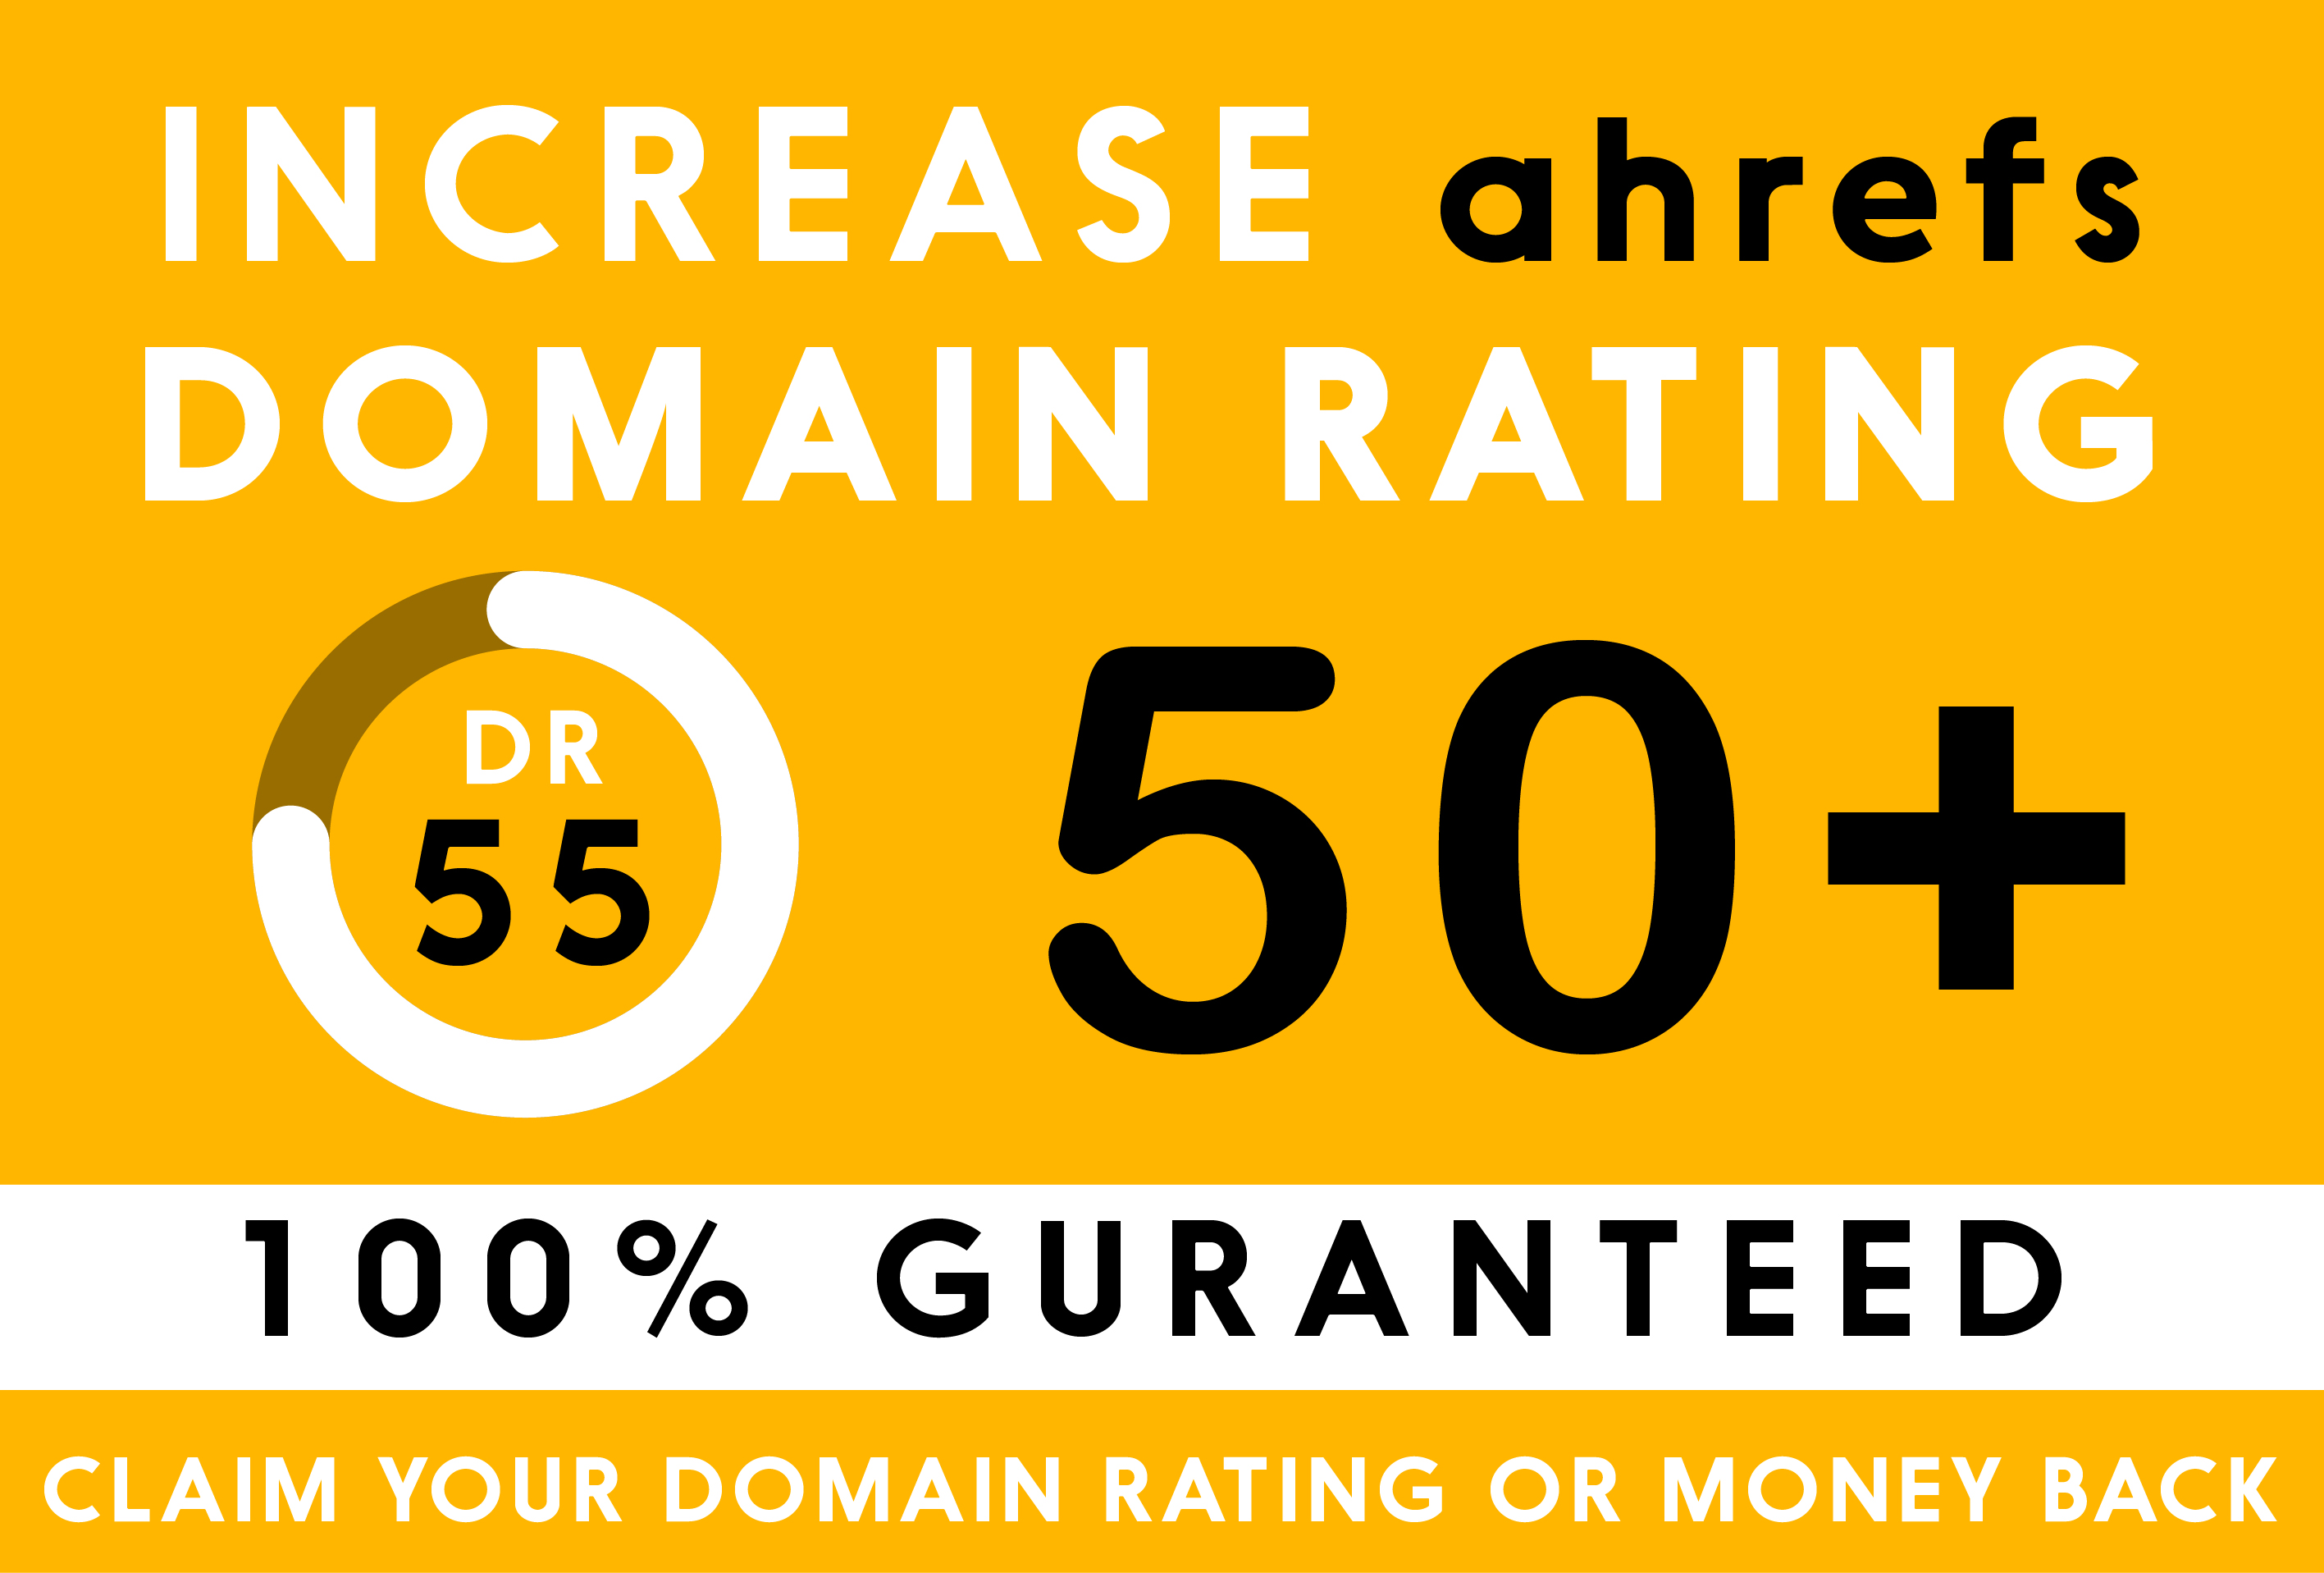 increase Ahrefs domain rating 30 Plus with seo whitehat technique